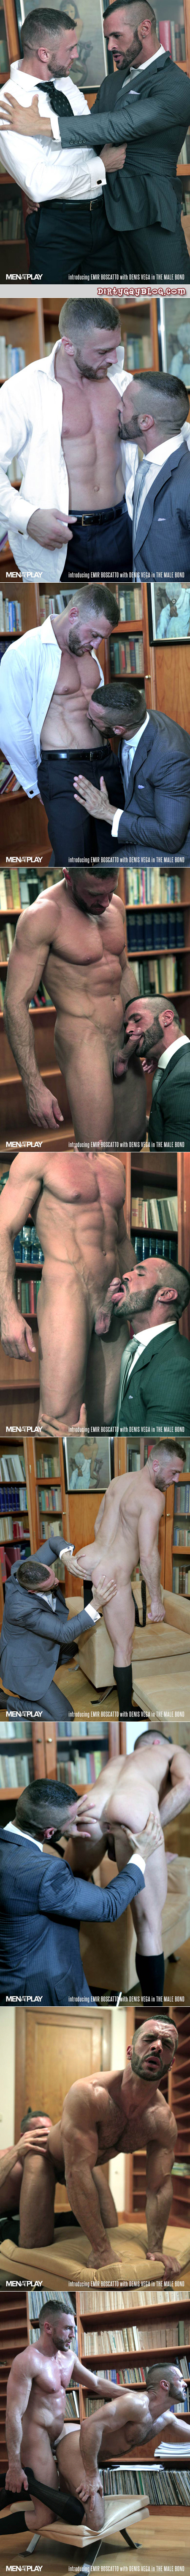 Muscle men in suits worshiping dress socks and having gay sex.